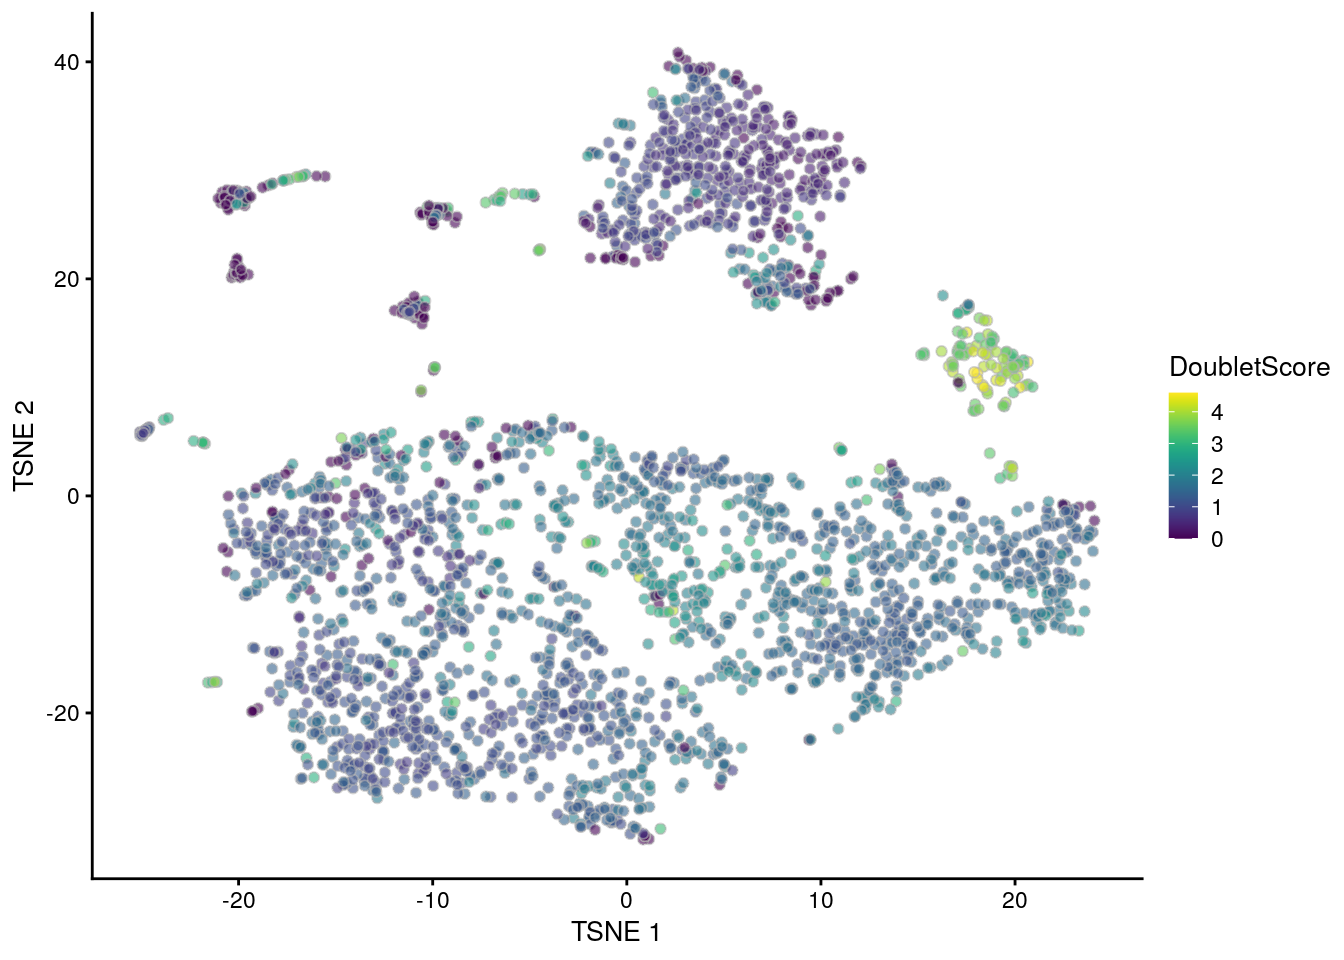 t-SNE plot of the mammary gland data set. Each point is a cell coloured according to its doublet density.